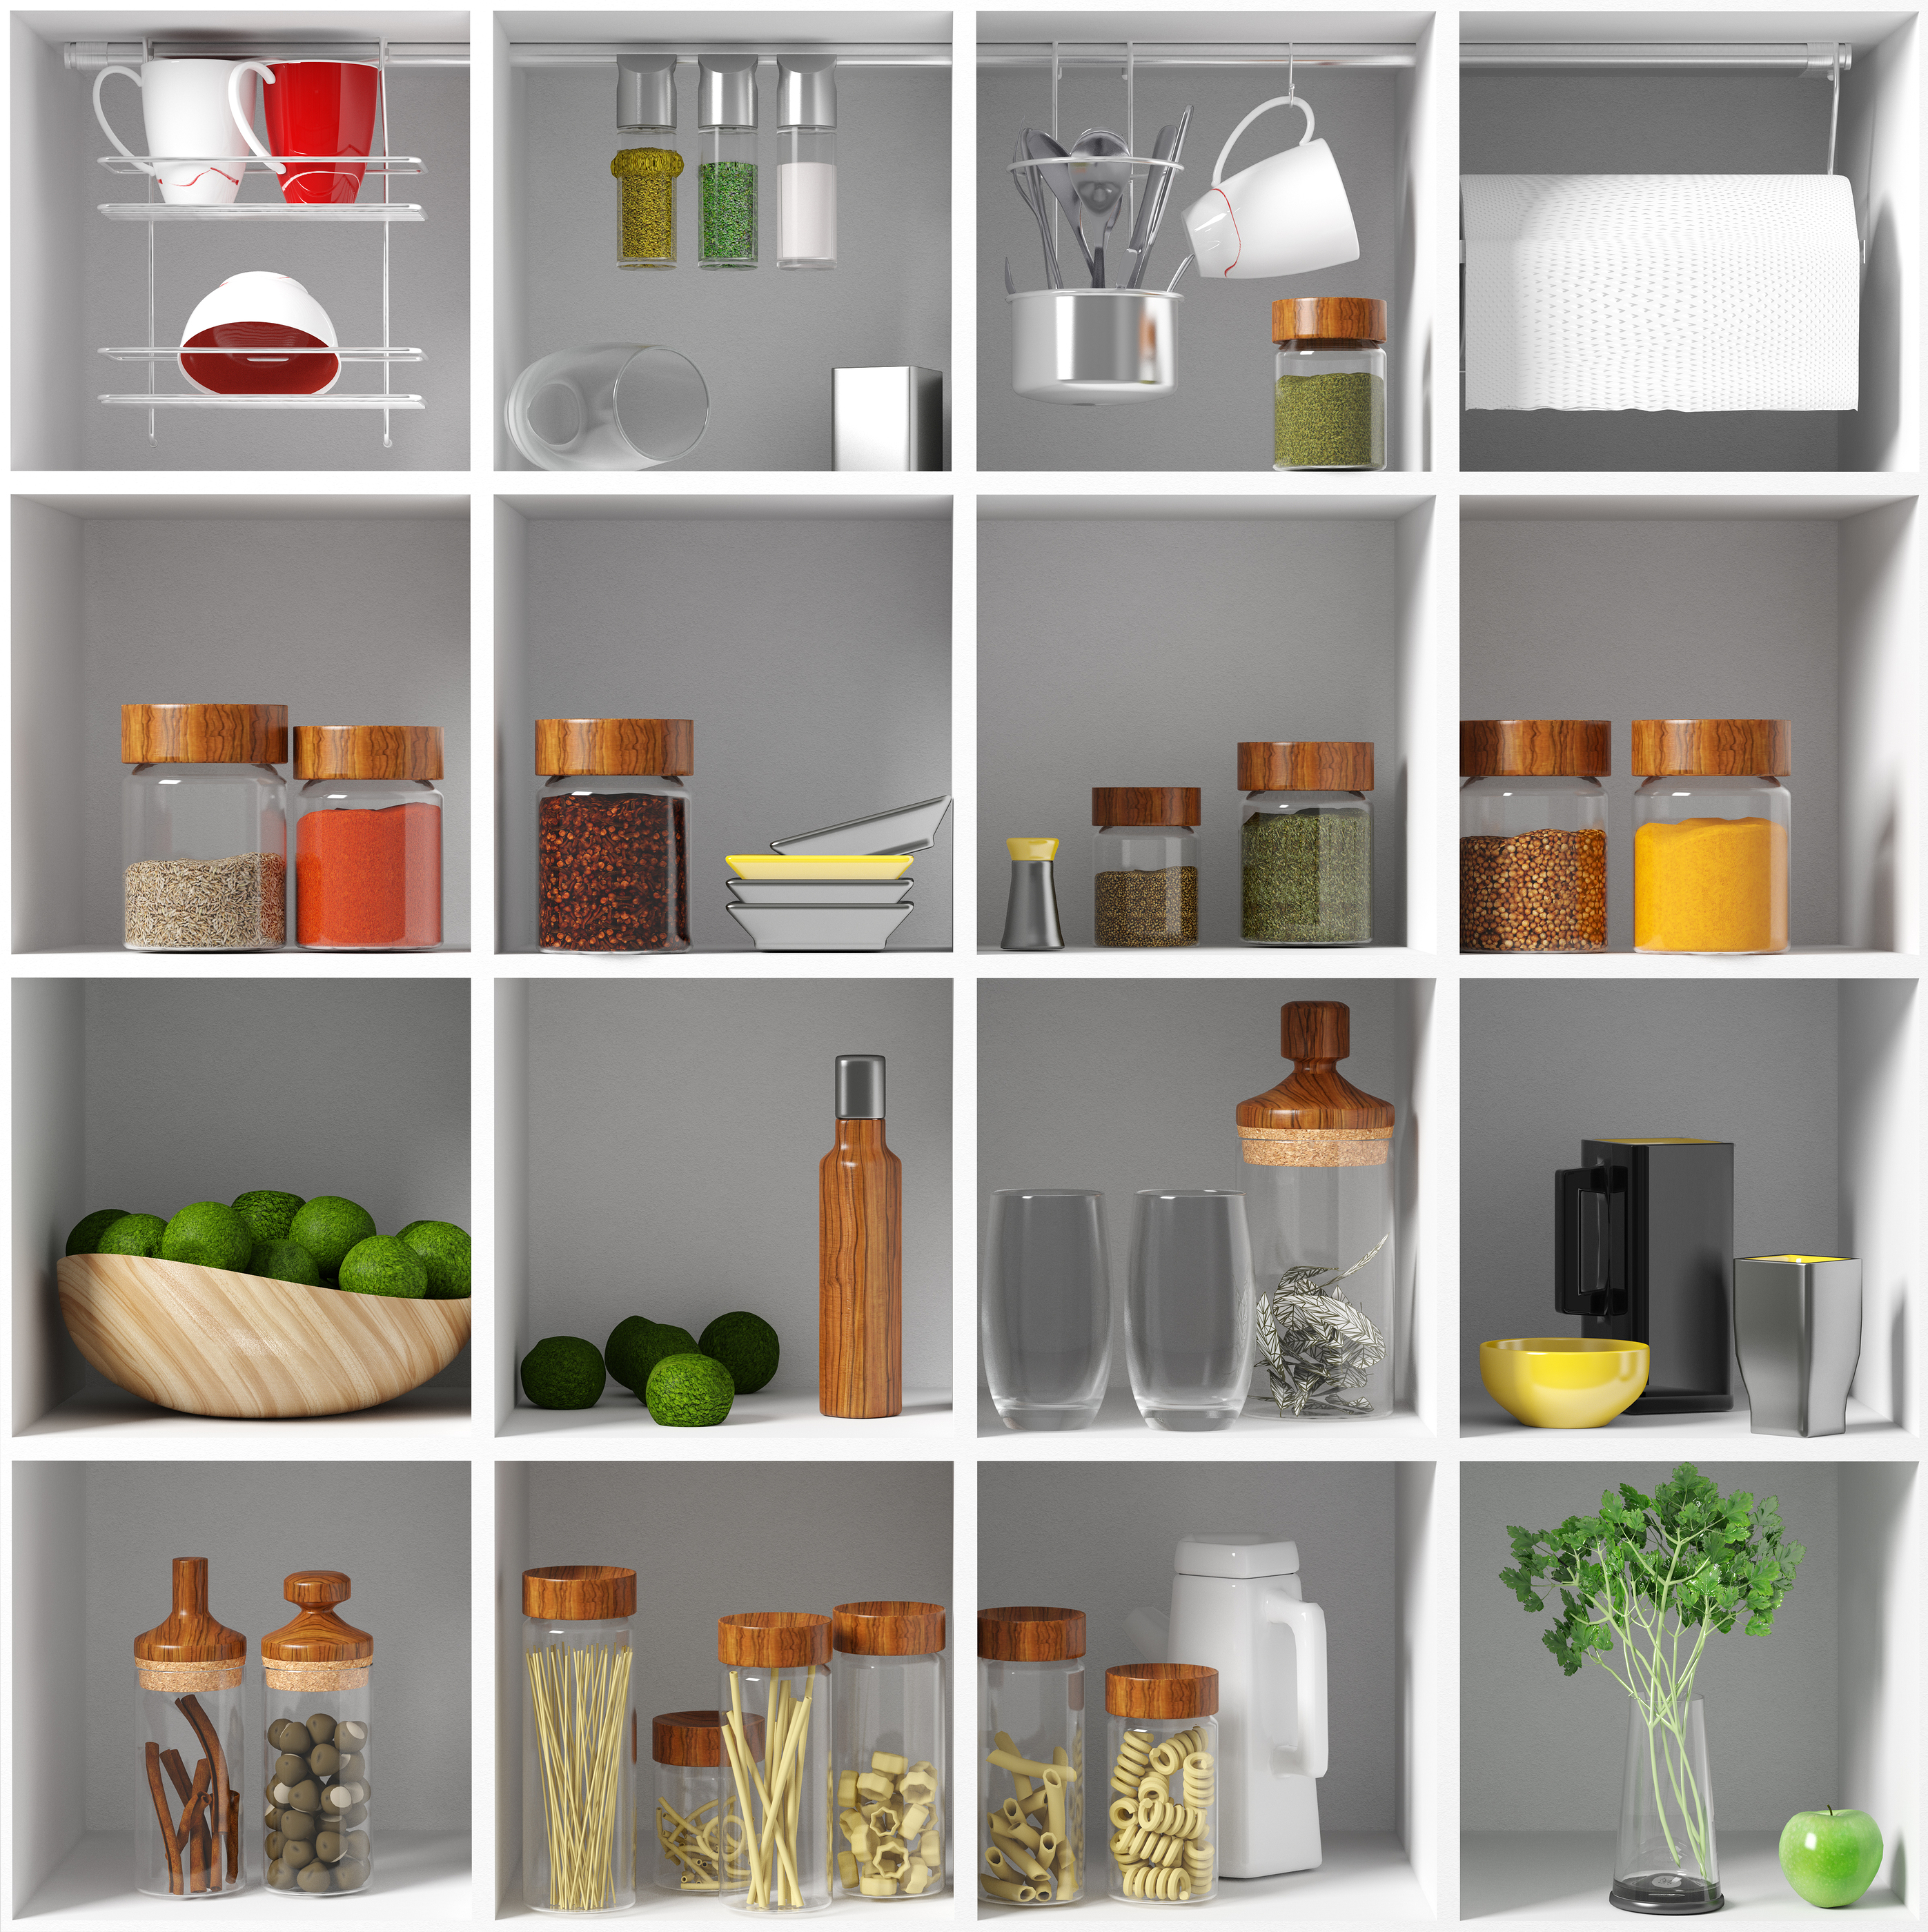 Organised kitchen shelves